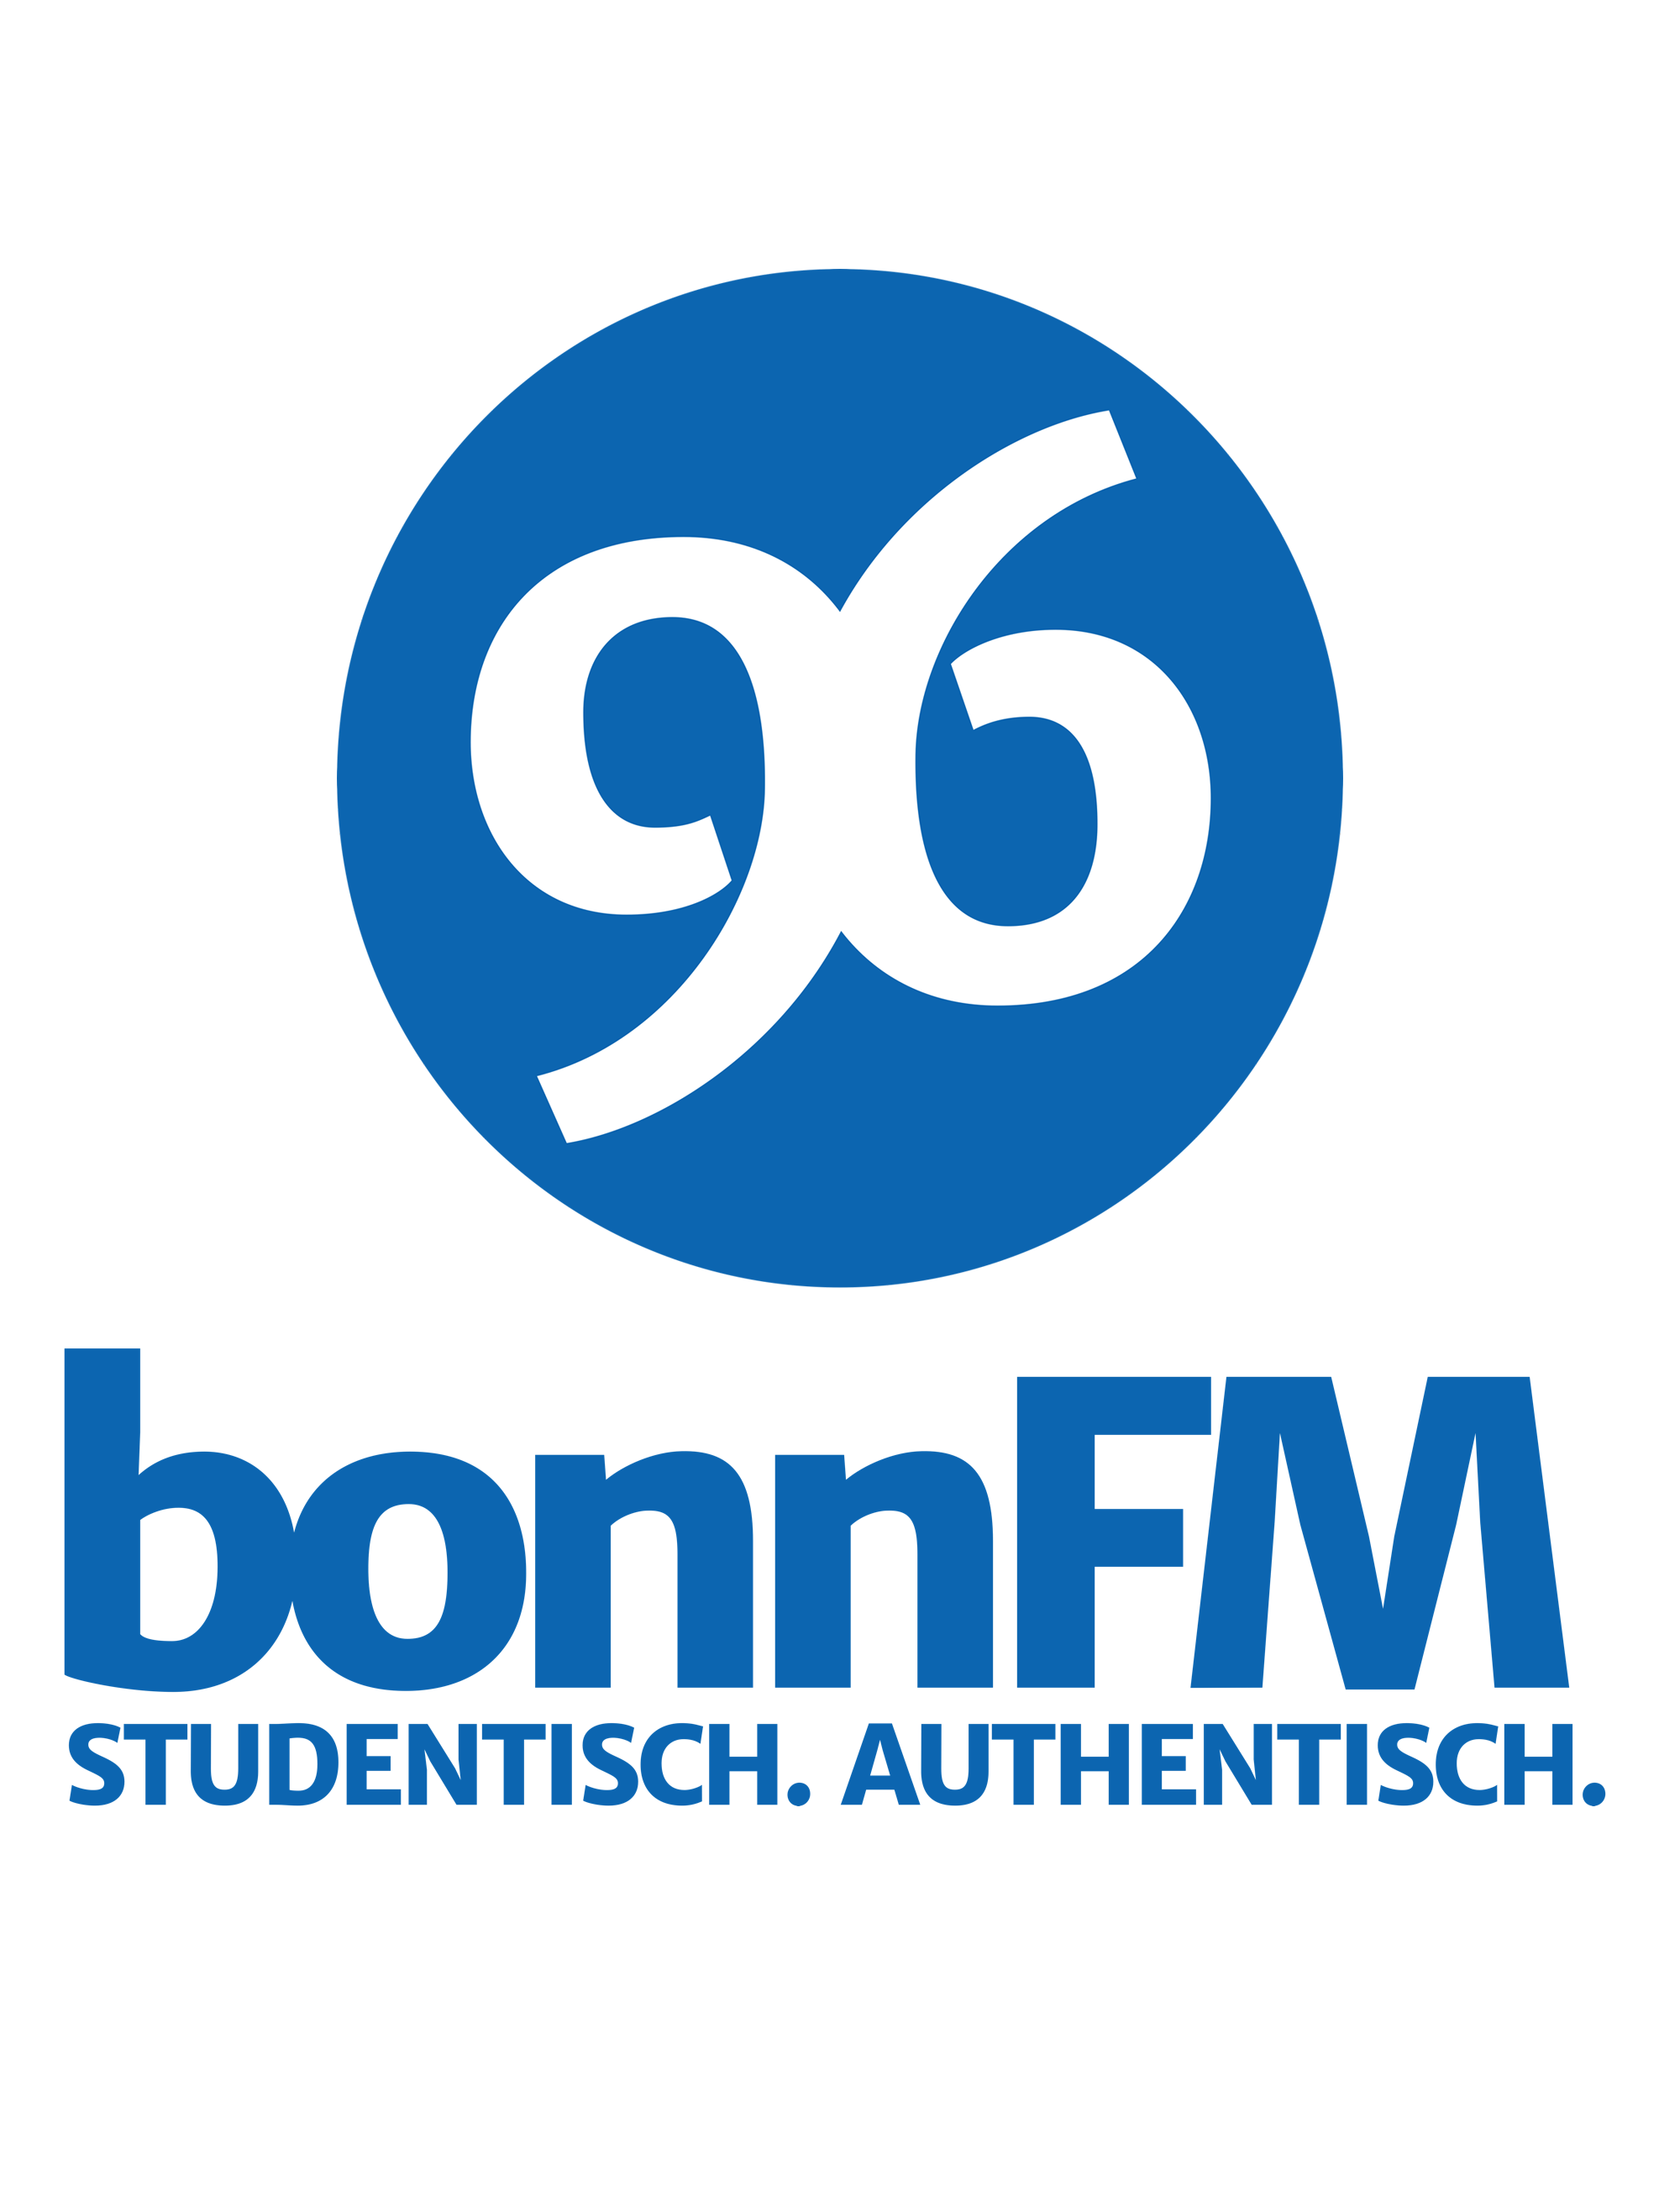 bonnFM-Logo-final.png